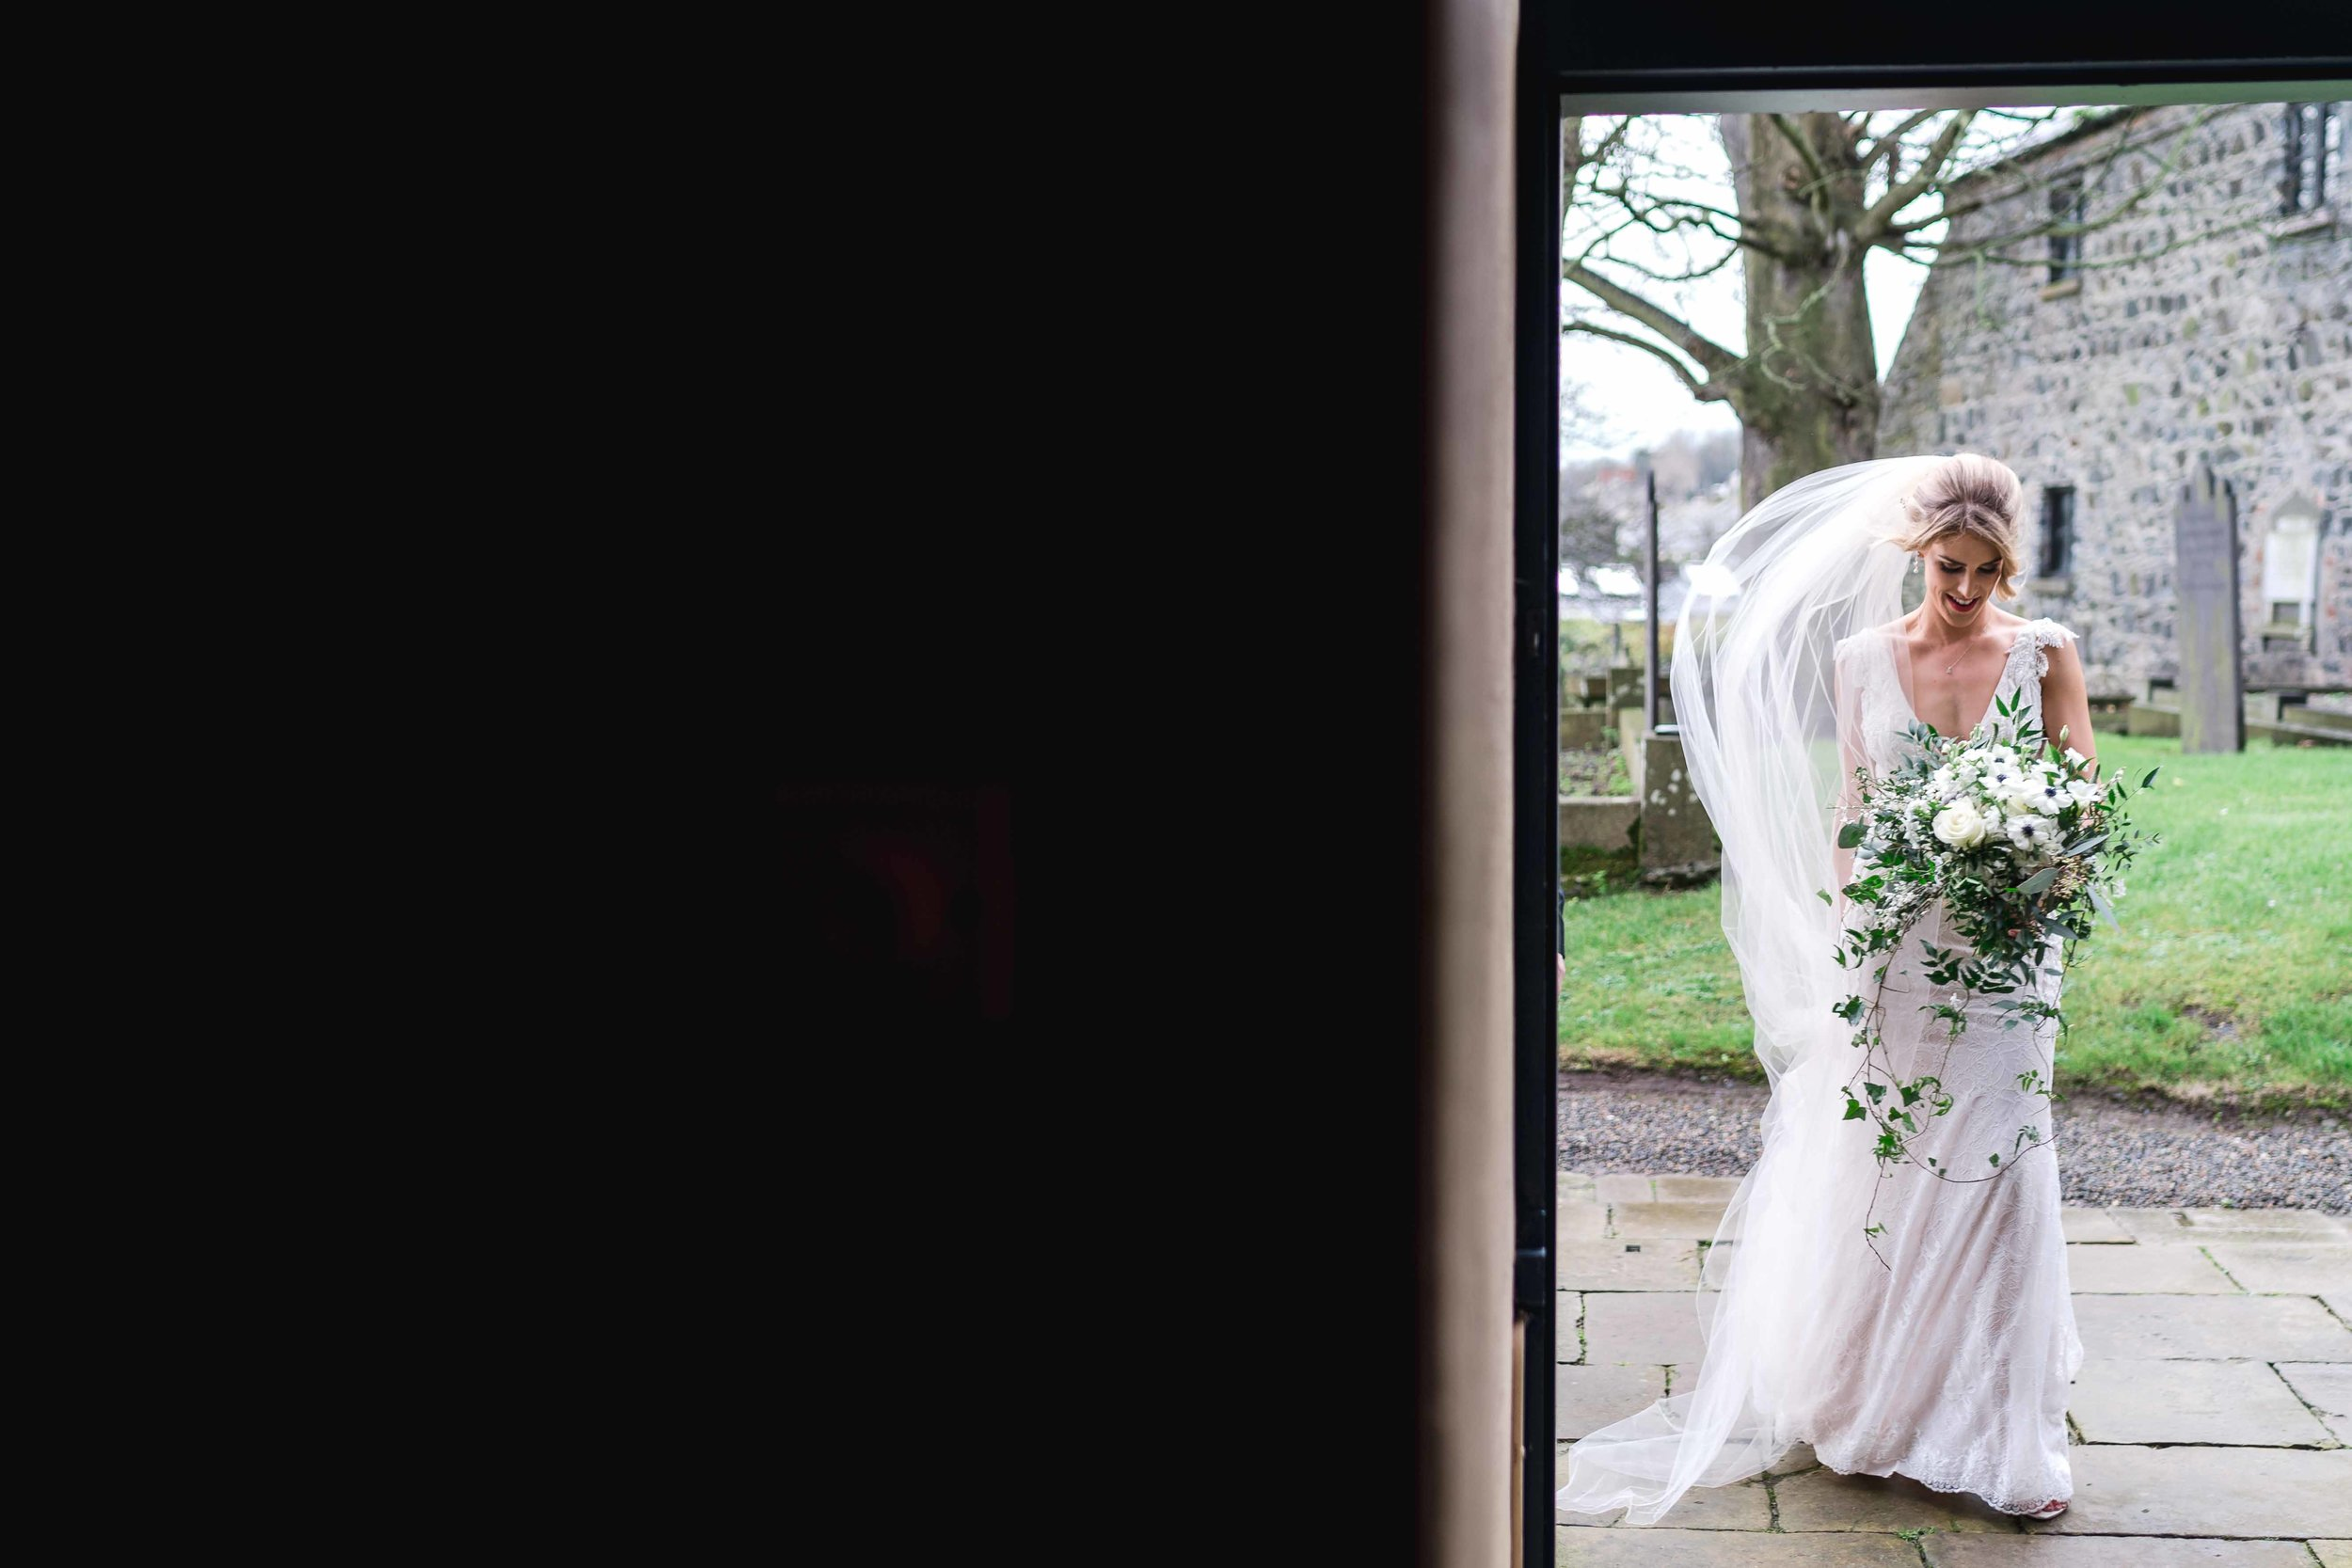 Natural Image of Bride as she enters church on her wedding day in Carlingford, Ireland